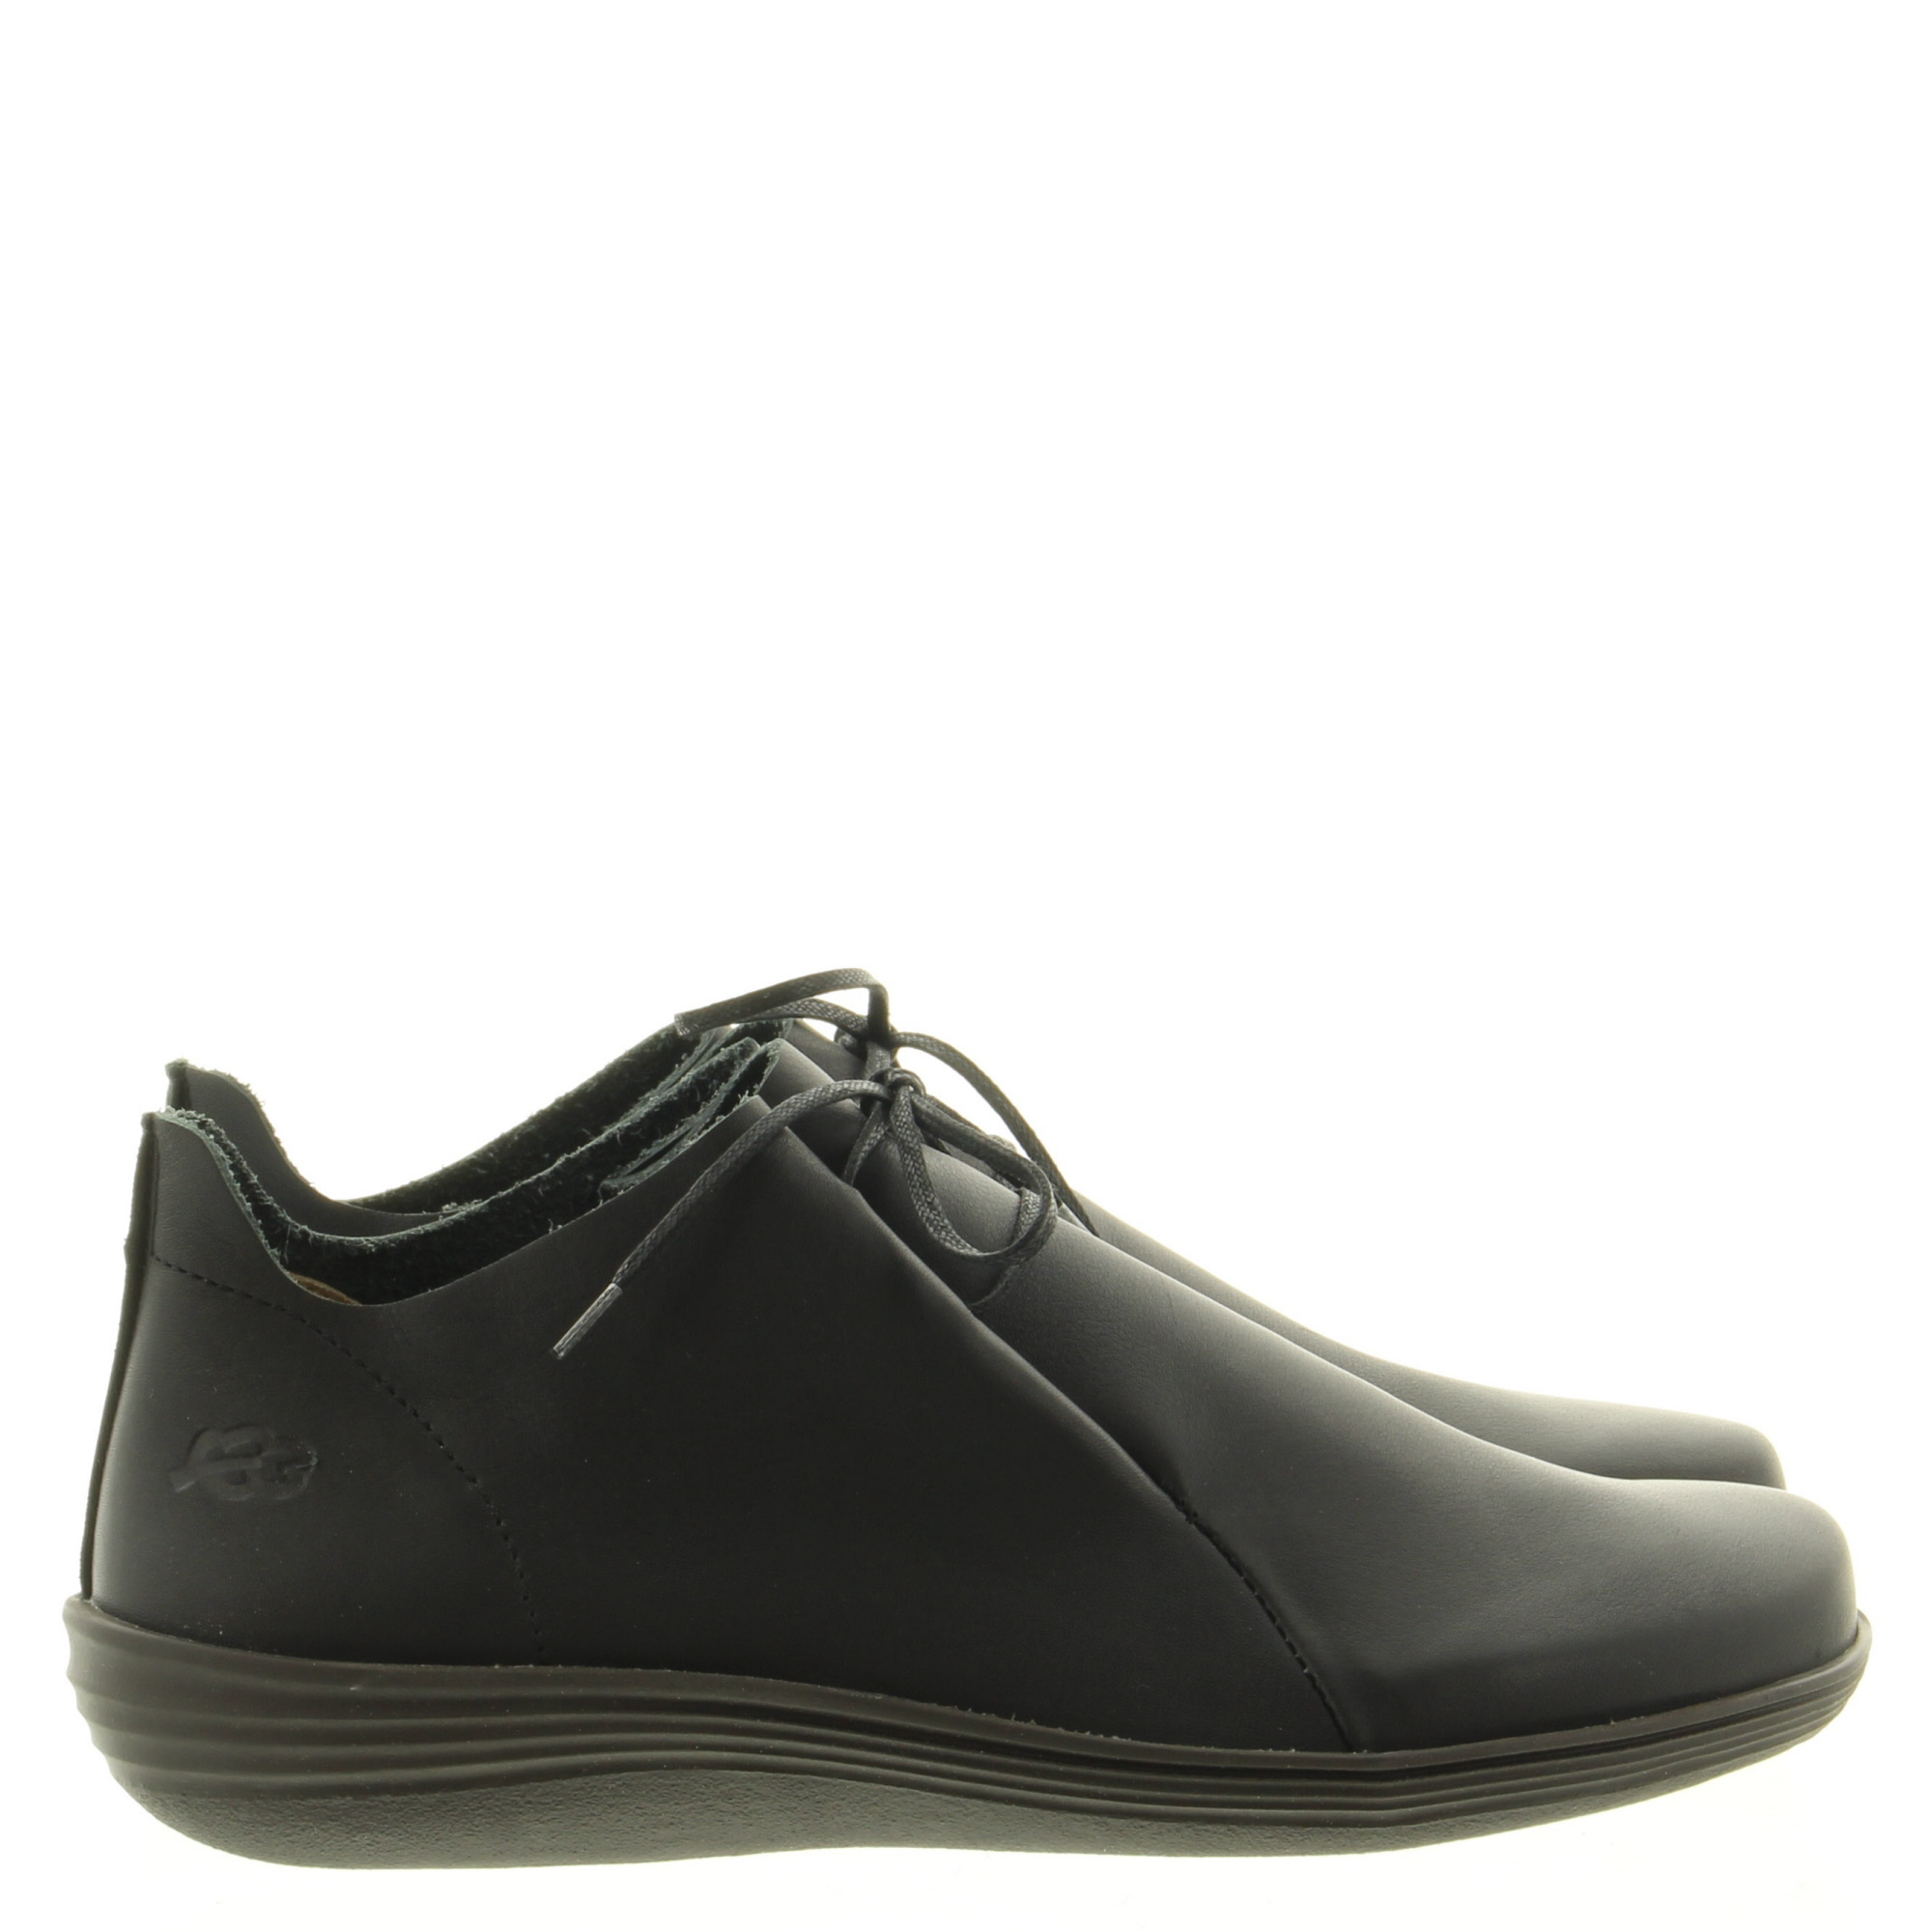 Loints 79101 Camerig 0584 Black